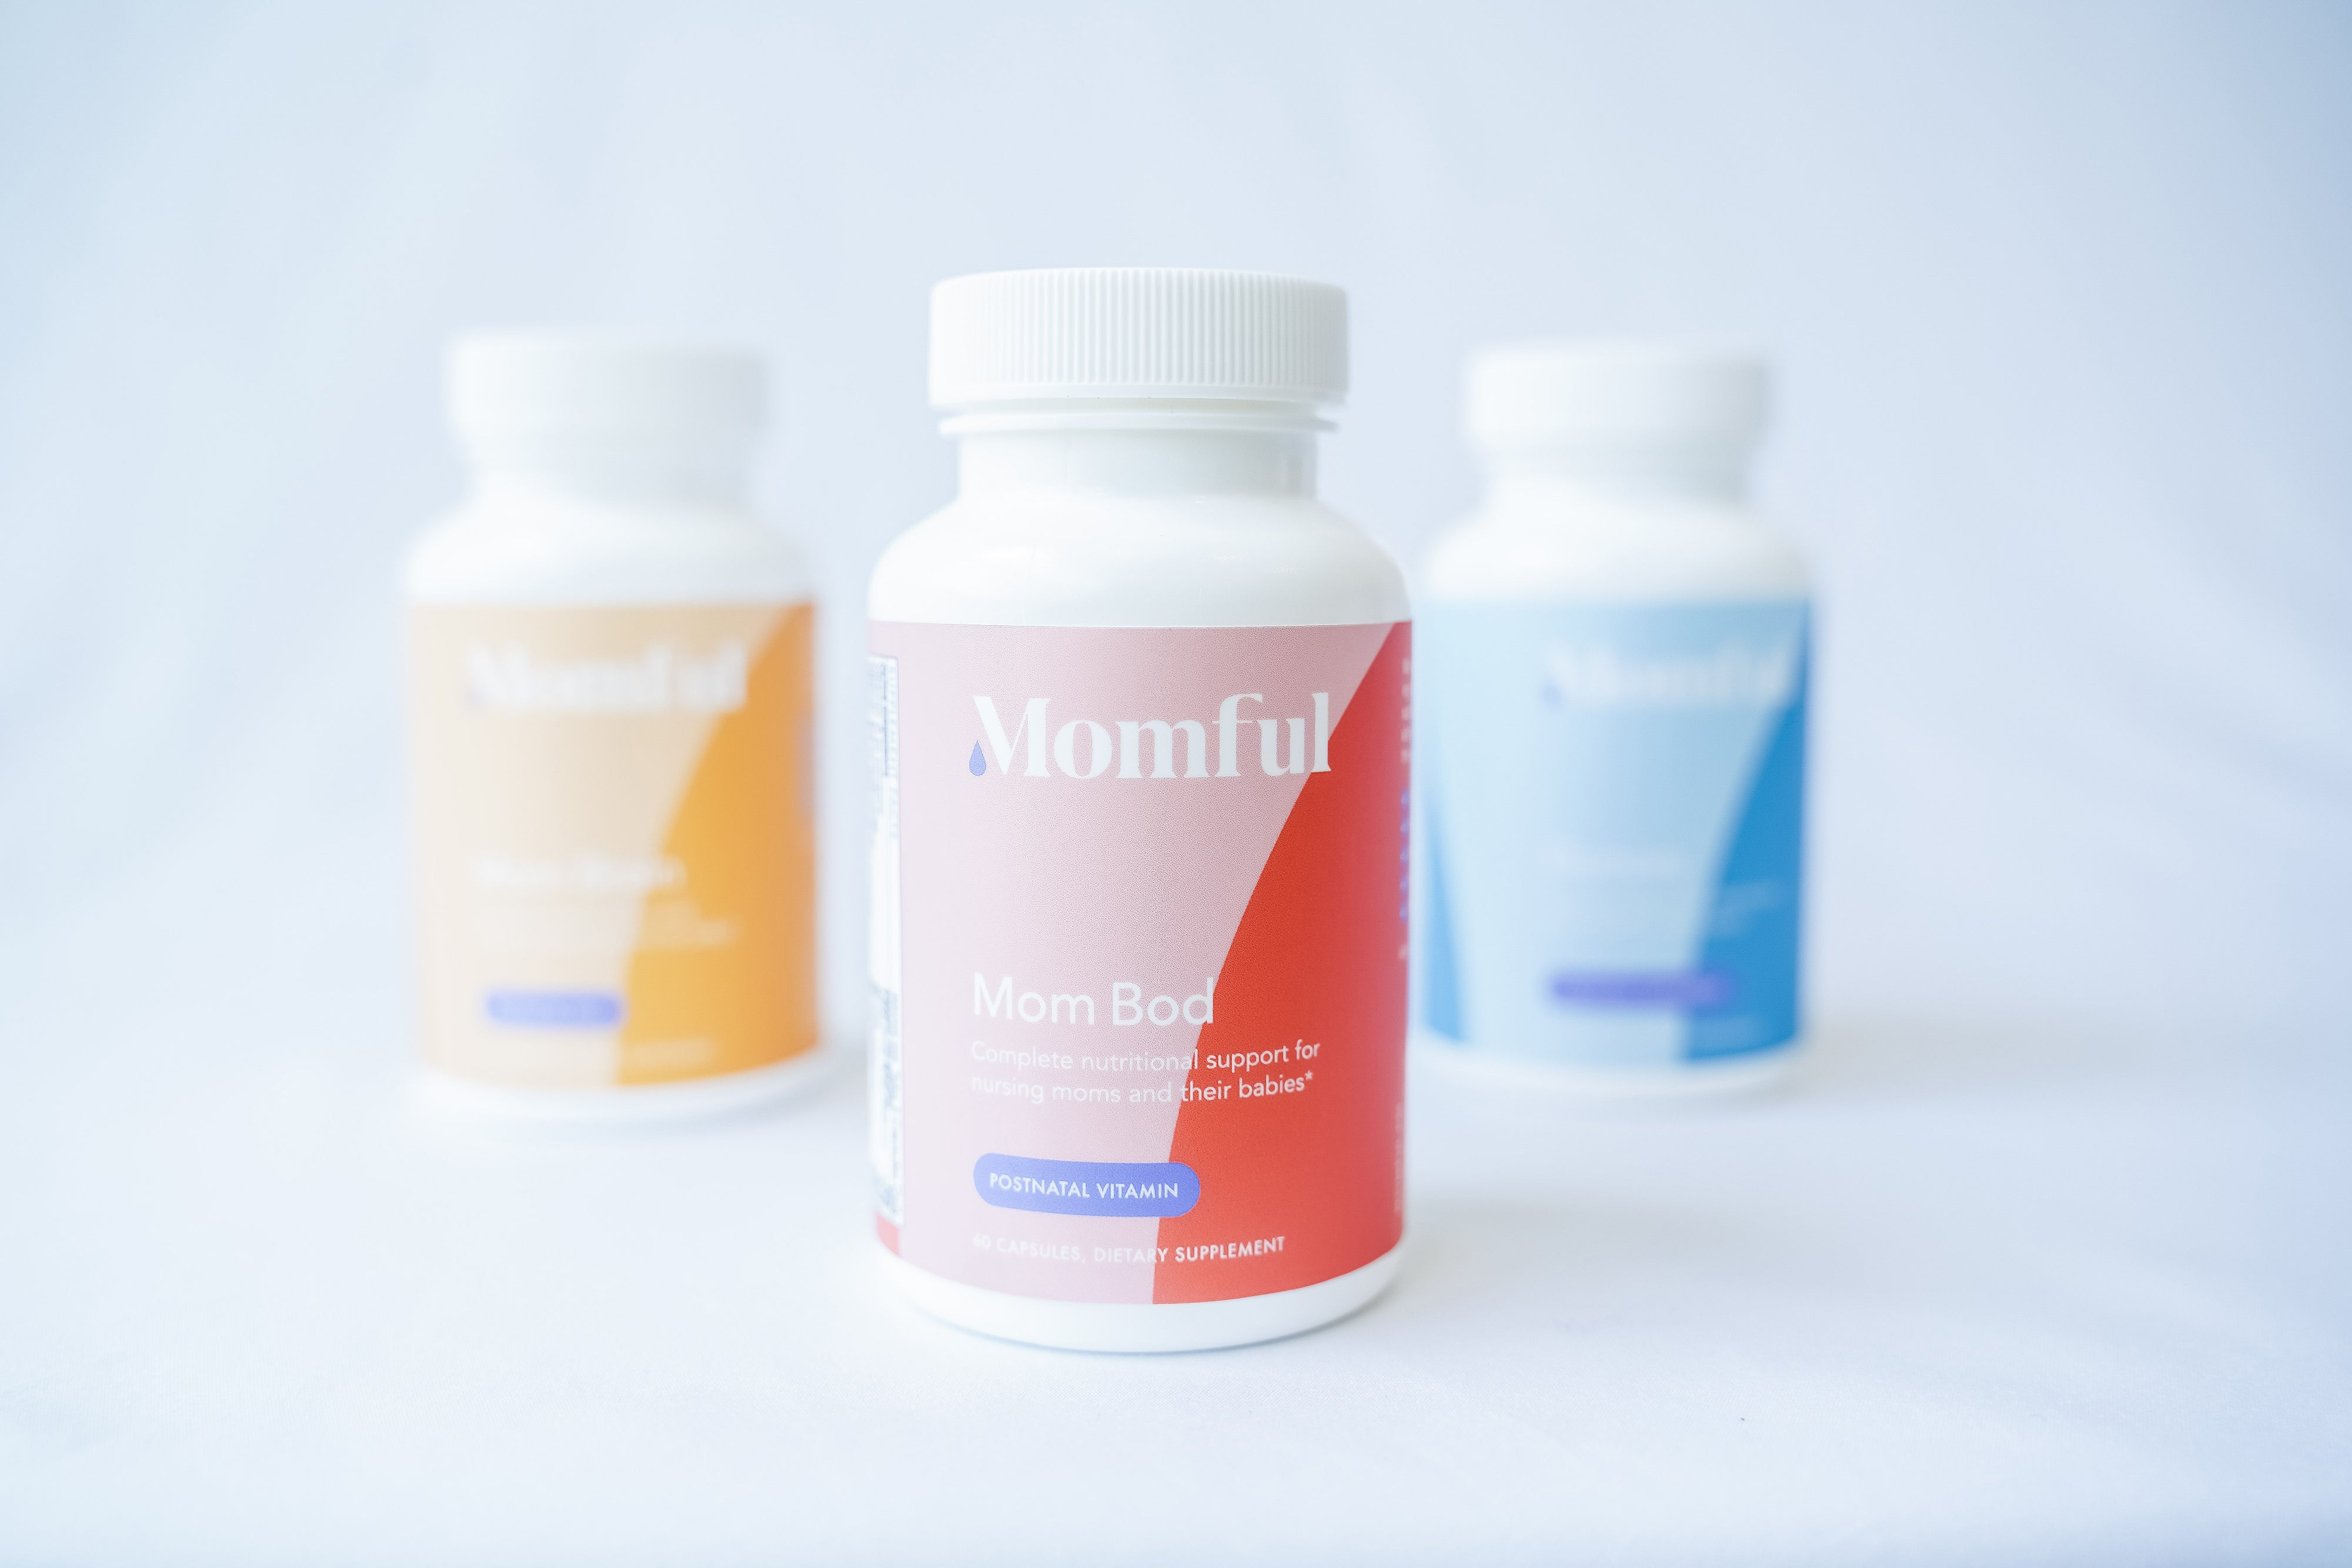 Mom Bod Postnatal Multivitamin